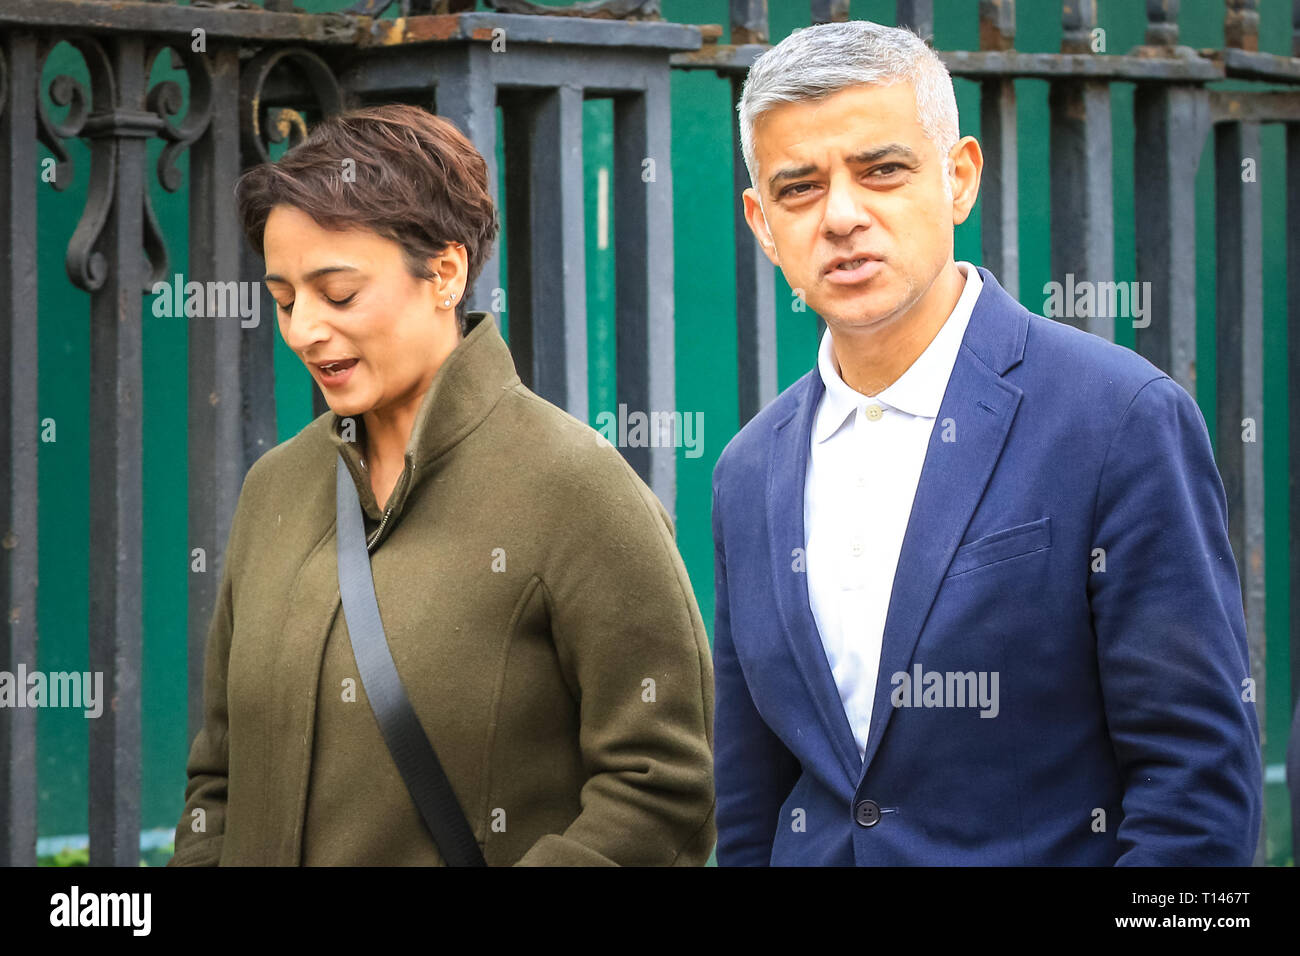 London, UK. 23rd Mar, 2019. London Mayor Sadiq Khan. The 'People's Vote March', also referred to as the 'Put it to the People' march at Parliament Square. The march, attended by hundreds of thousands, makes its way through Central London and ends with speeches by supporters and politicians in Parliament Square, Westminster. Credit: Imageplotter/Alamy Live News - Stock Image